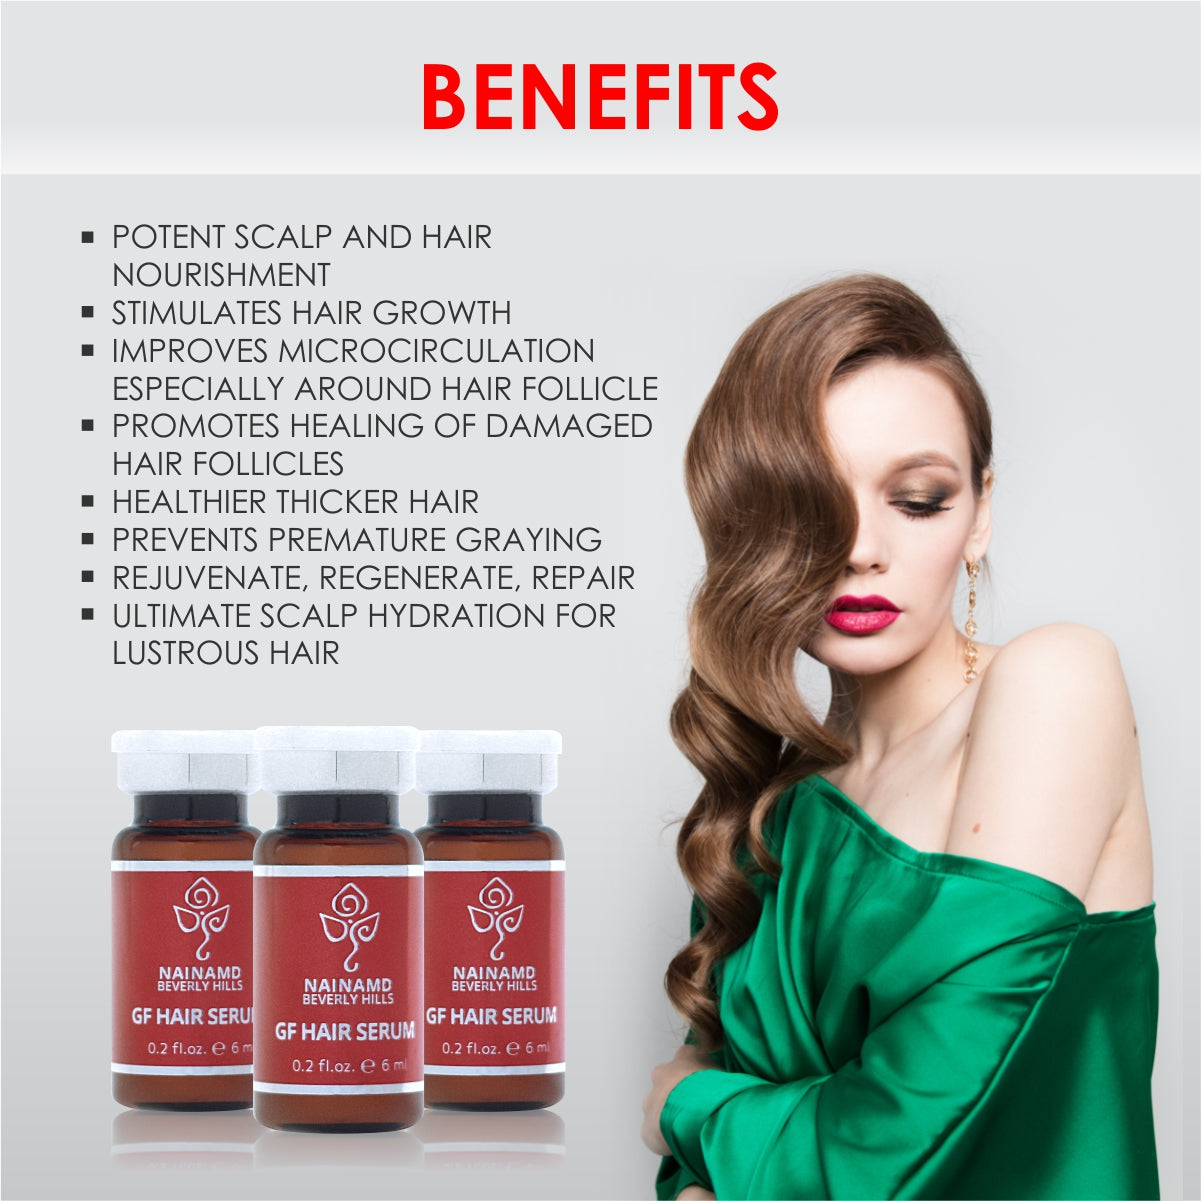 NainaMD Beverly Hills Hair Serum